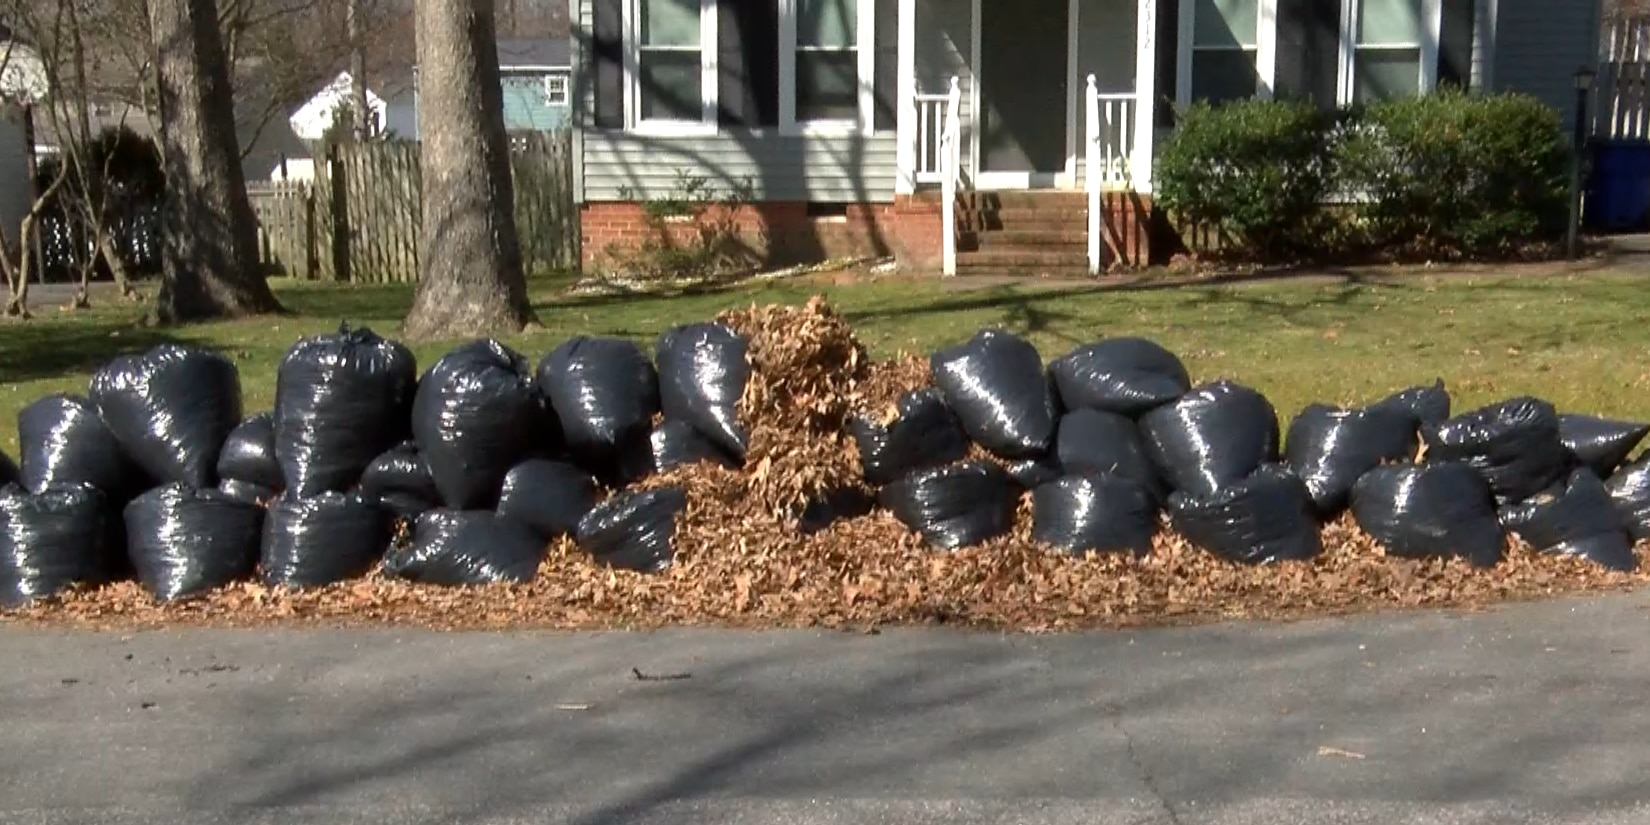 Neighbors frustrated over lack of bagged leaf collection